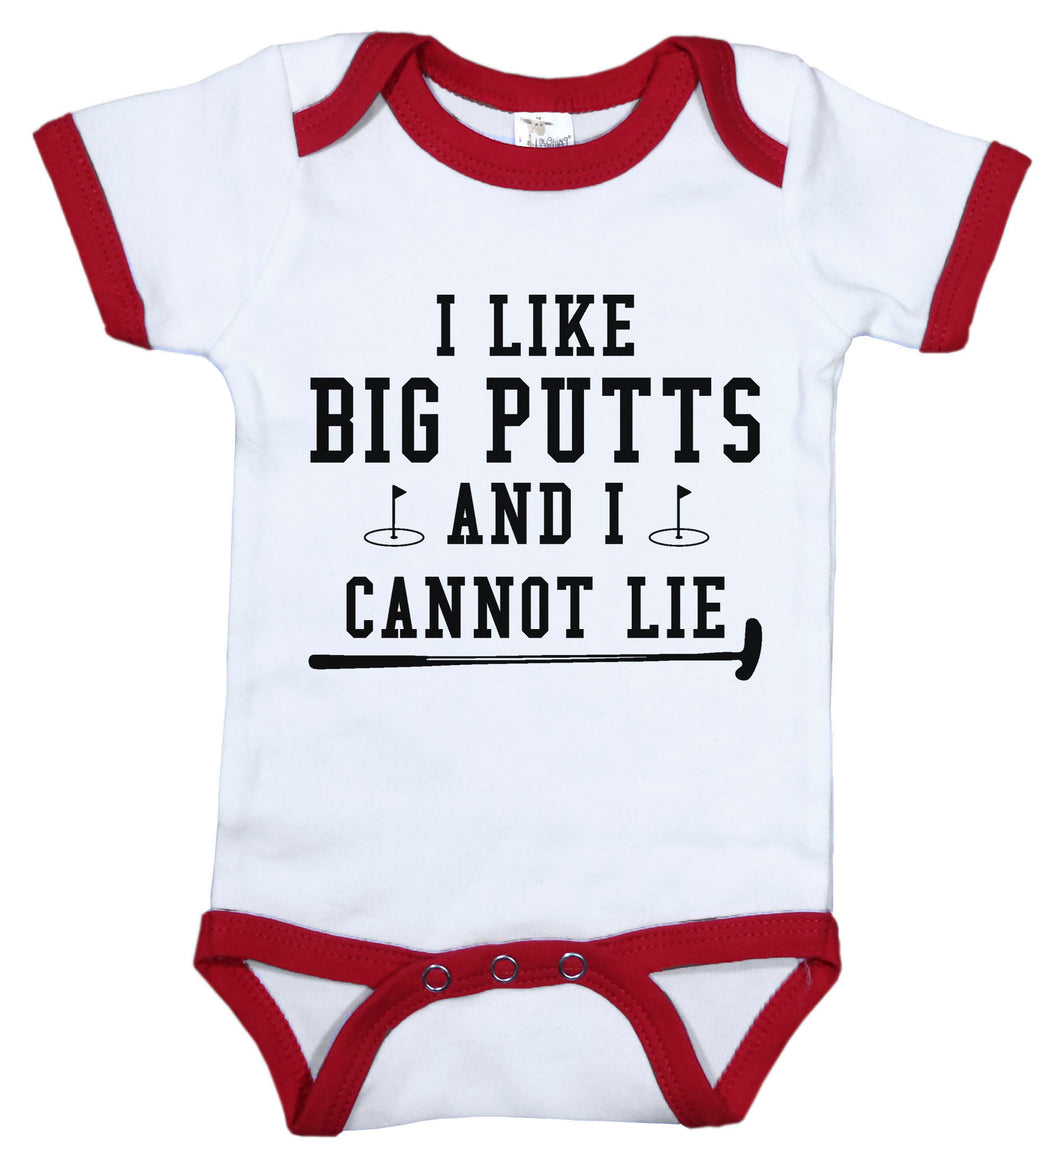 I Like Big Putts and I Cannot Lie / Golf Ringer Onesie